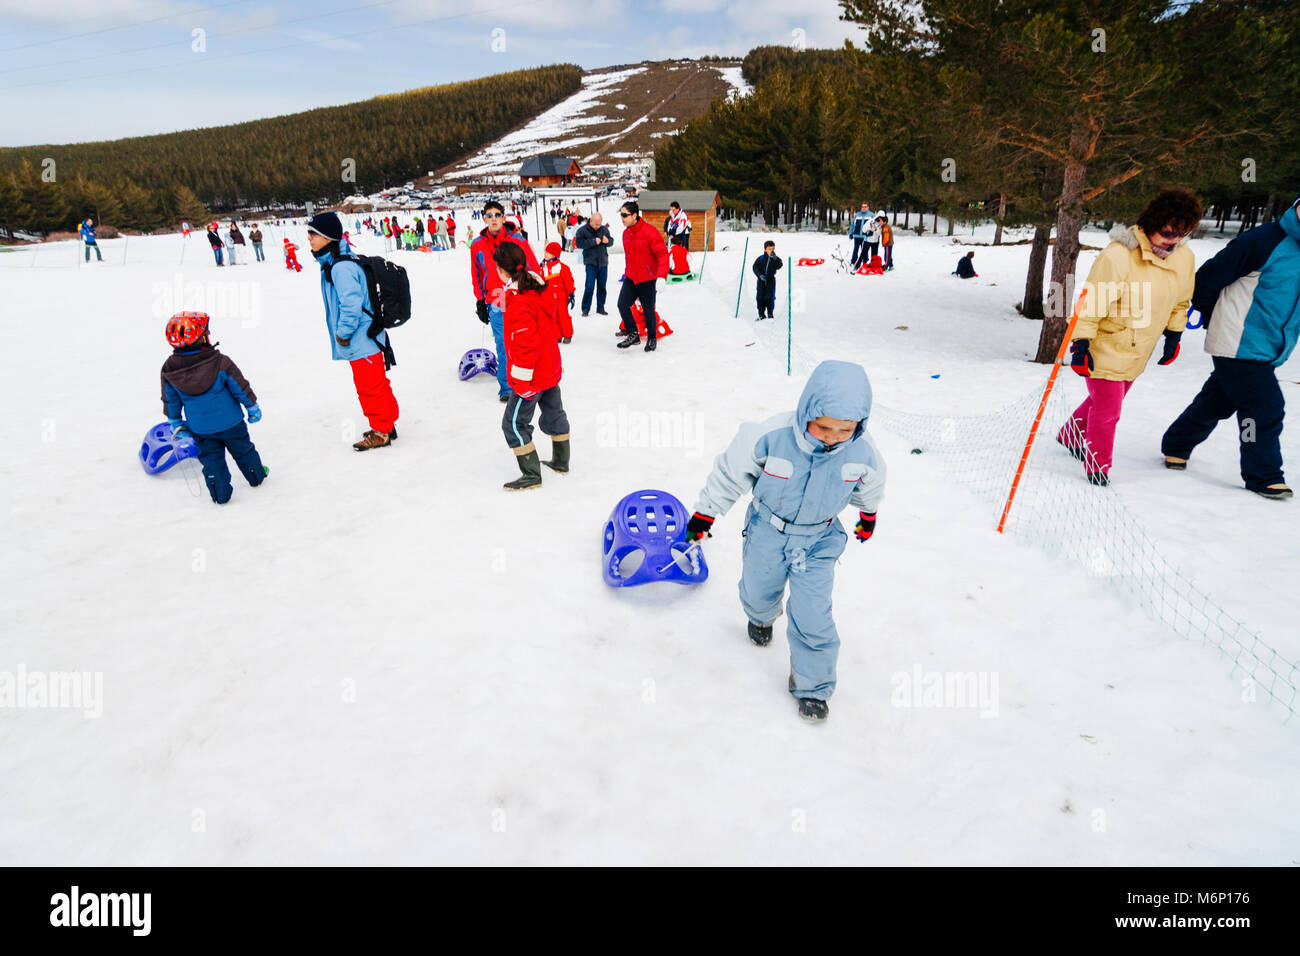 A child in ski suit is pushing a sledge on a snow-covered field at Puerto de la Ragua Ski resort in Sierra Nevada, - Stock Image